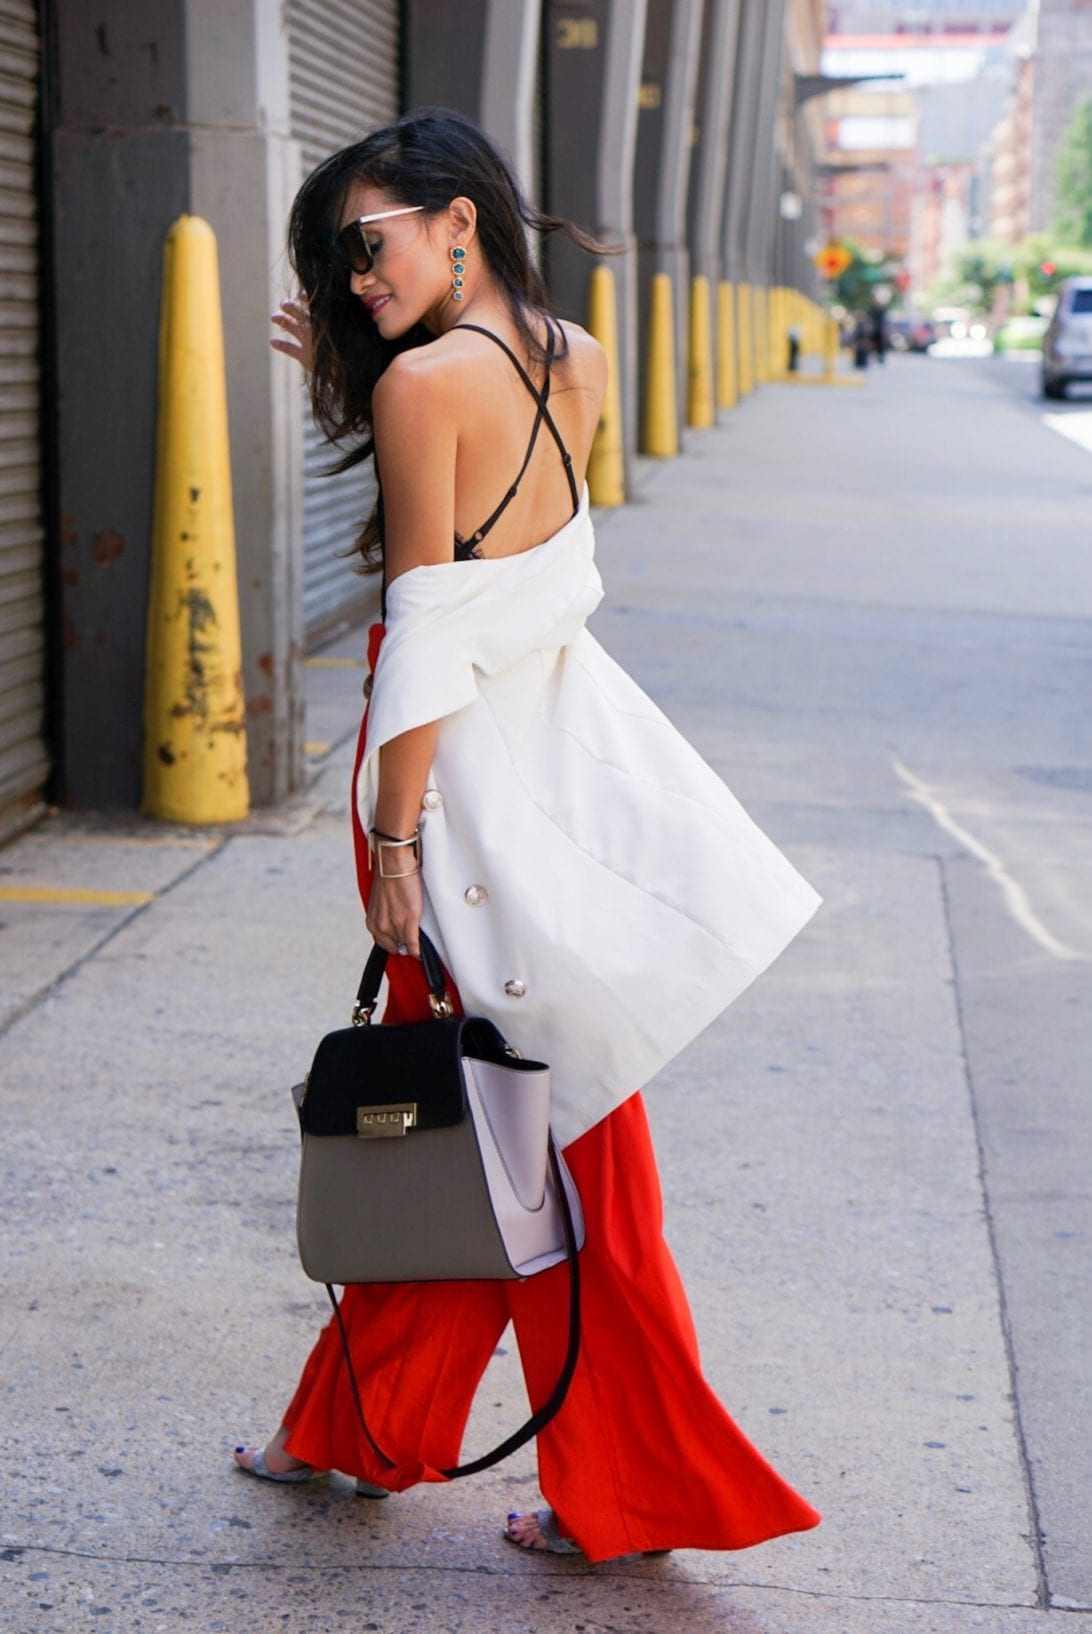 RED WIDE LEG PANTS, AGACI, NYFW SEPTEMBER 2017, NYFW STYLE, NYFW OUTFITS, New York FASHION WEEK, BLACK LACE BODYSUIT, PRADA SUNGLASSES, WHITE VEST, Zac Zac Posen bag